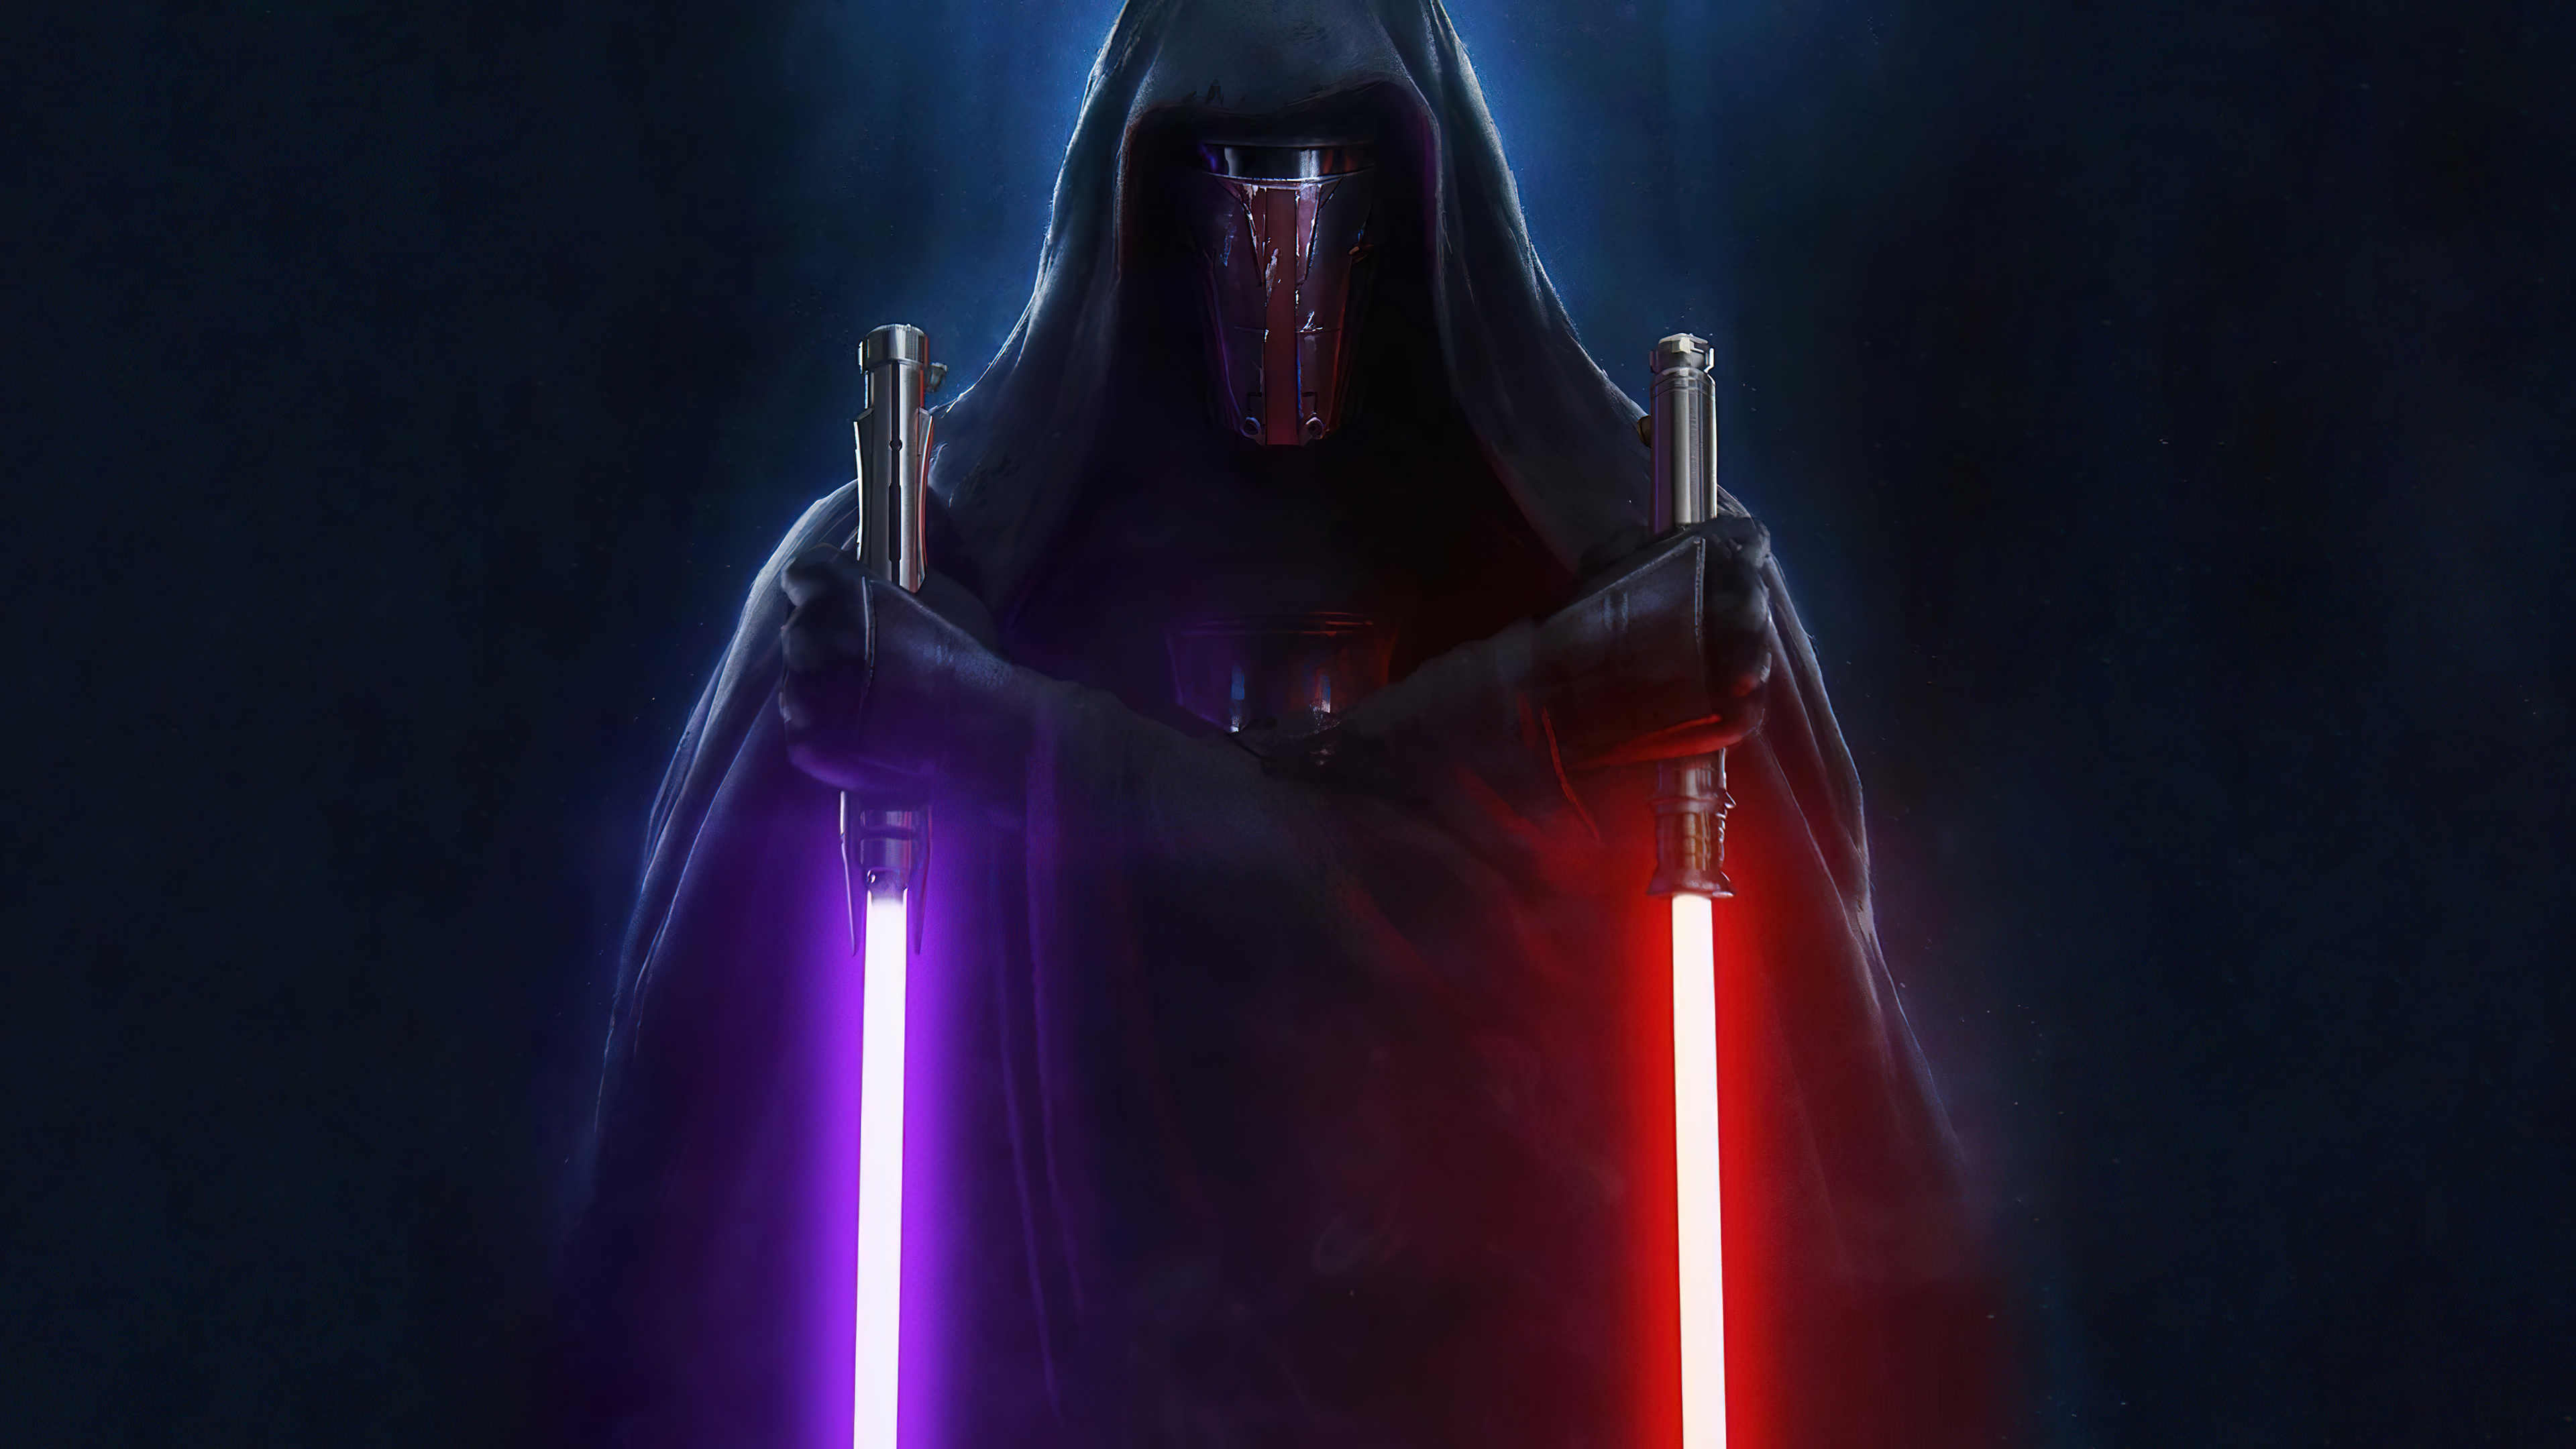 Fondos de pantalla Darth Revan de Star Wars